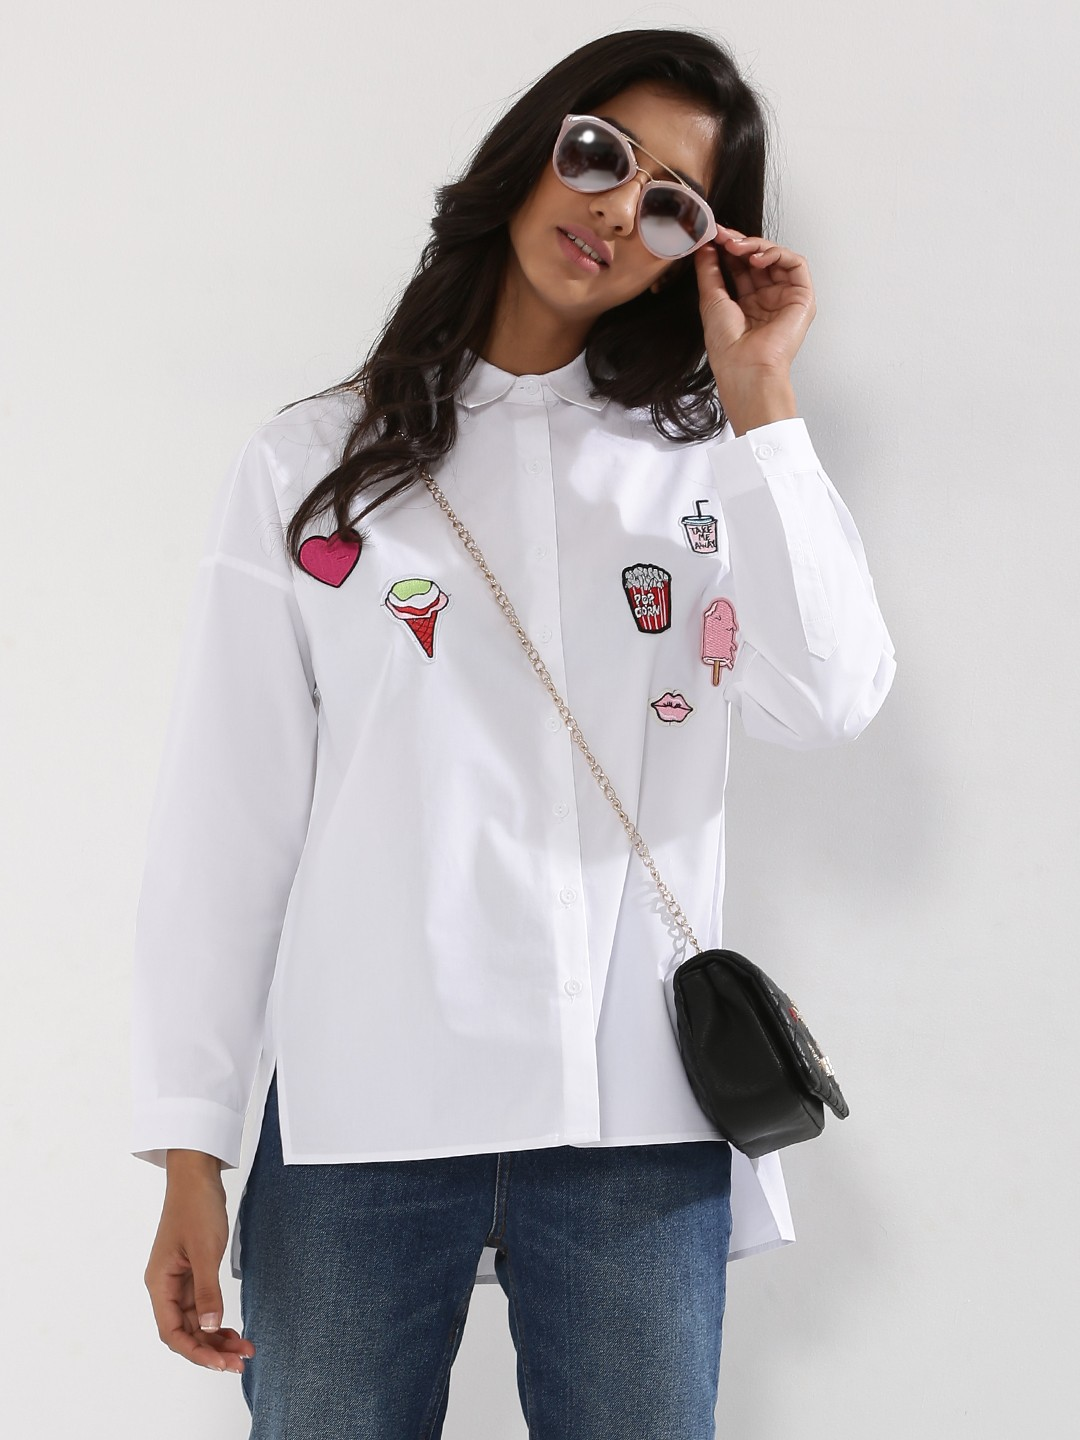 Buy GLAMOROUS Patch Work Shirt For Women - Women's White Shirts ...